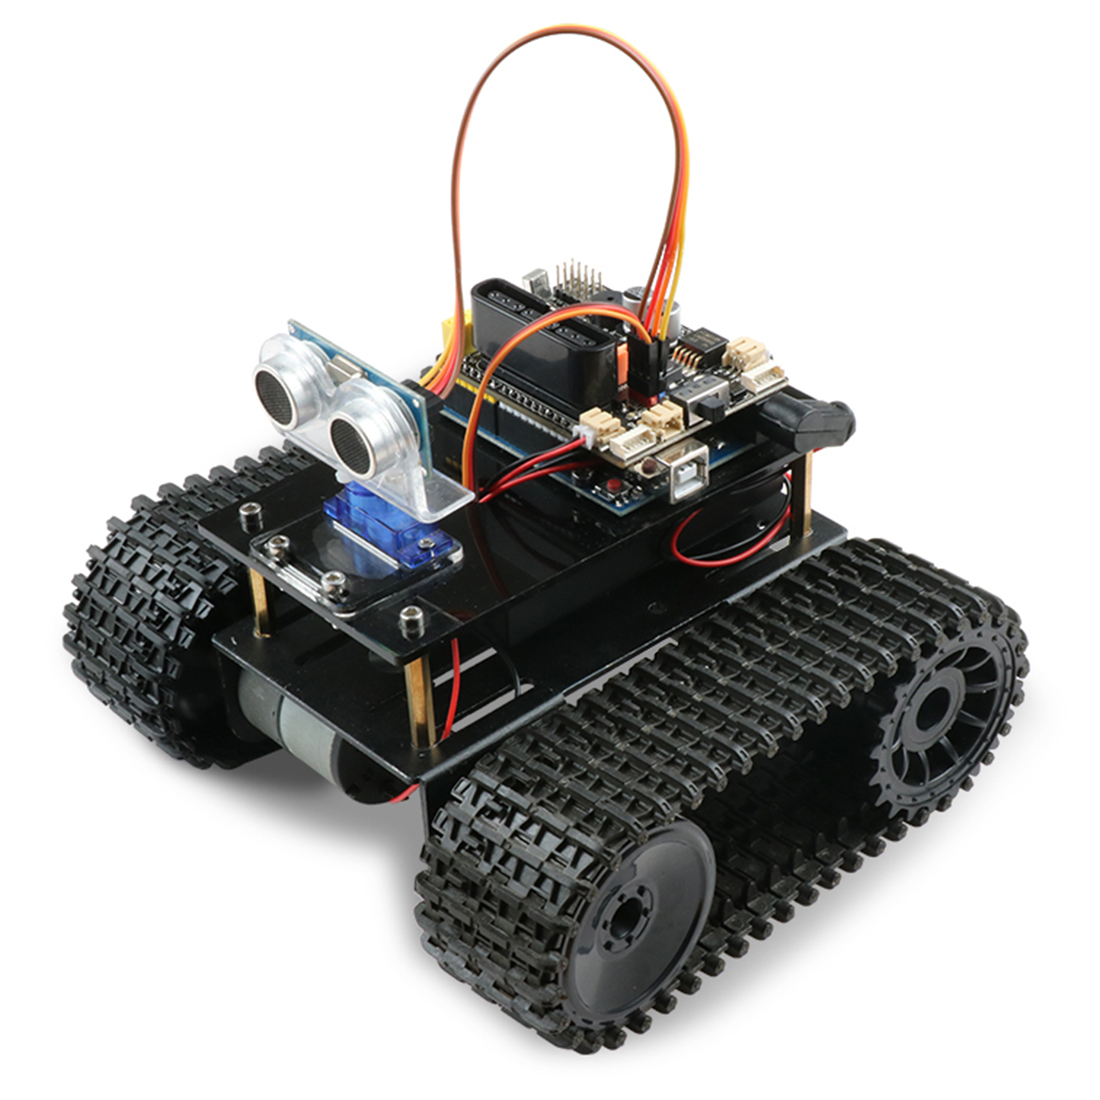 DIY Obstacle Avoidance Smart Programmable Robot Tank Educational Learning Kit For Arduino UNO Interactive Game Educational Toys